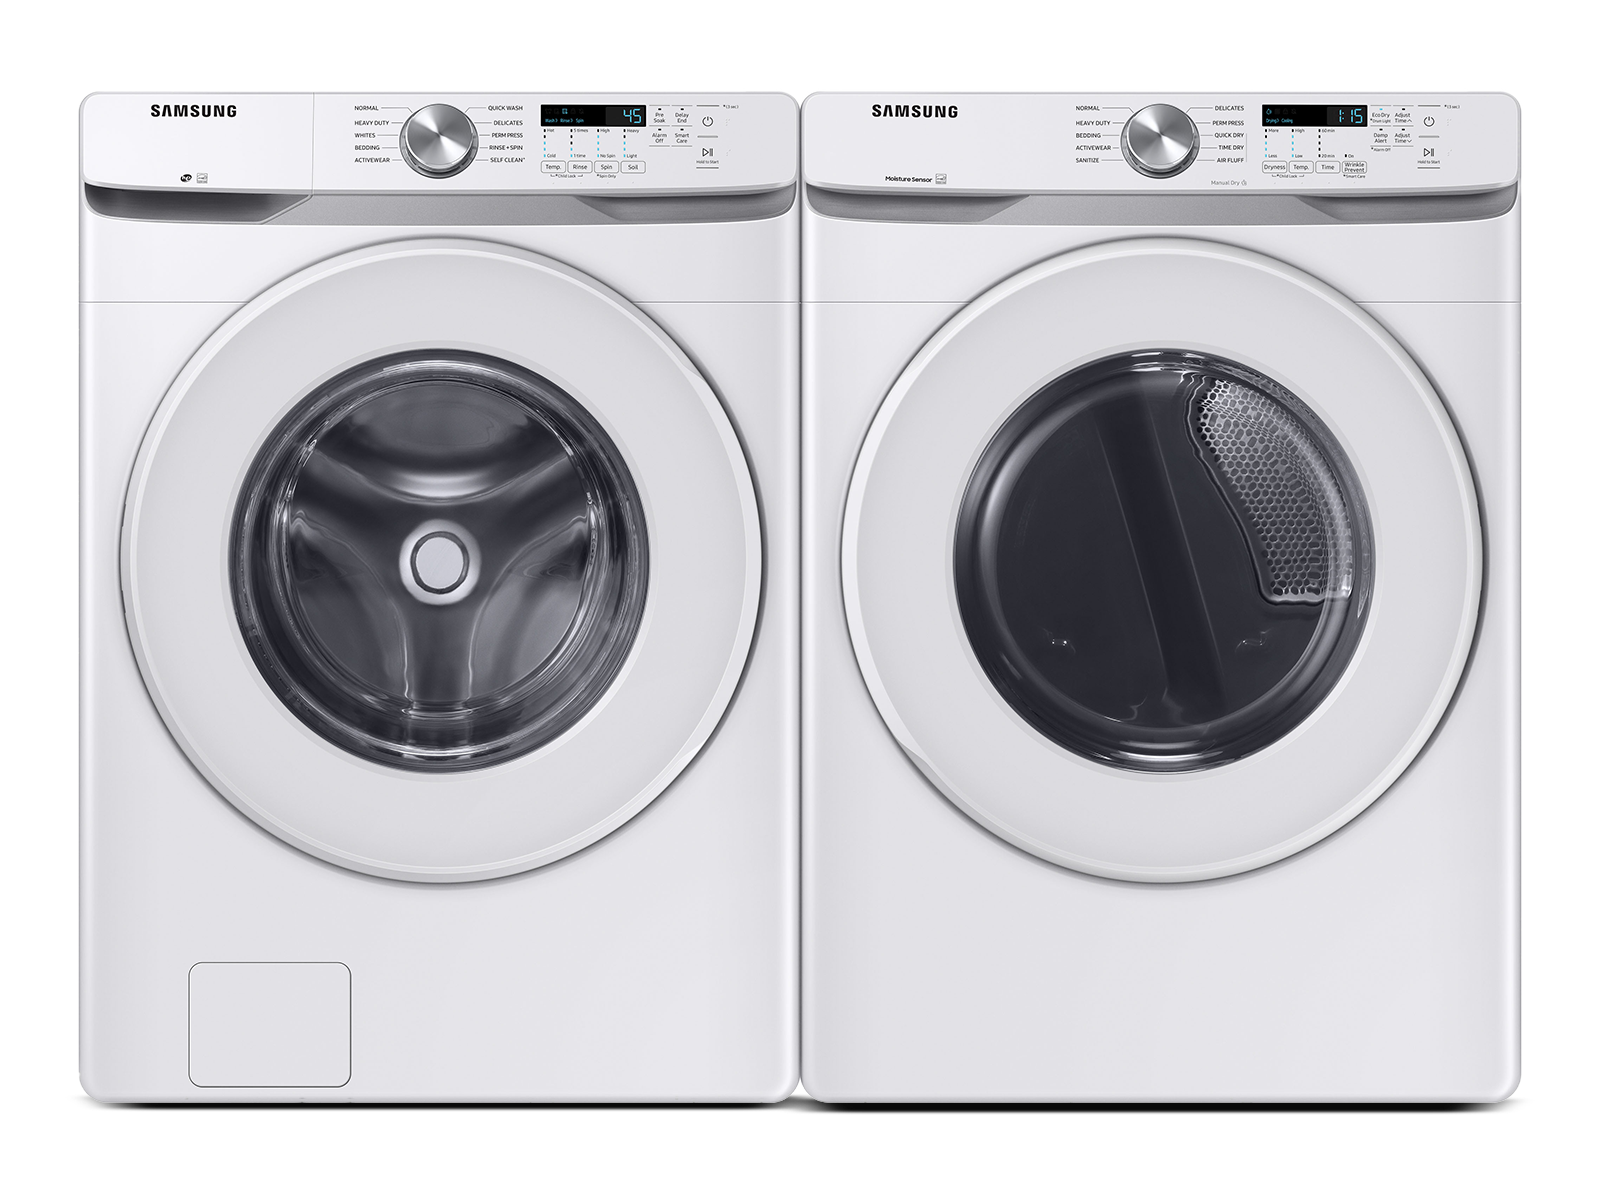 Samsung coupon: Samsung Front Load Washer & Dryer Set with Vibration Reduction Technology+ and Sensor Dry in White(BNDL-1603912197302)